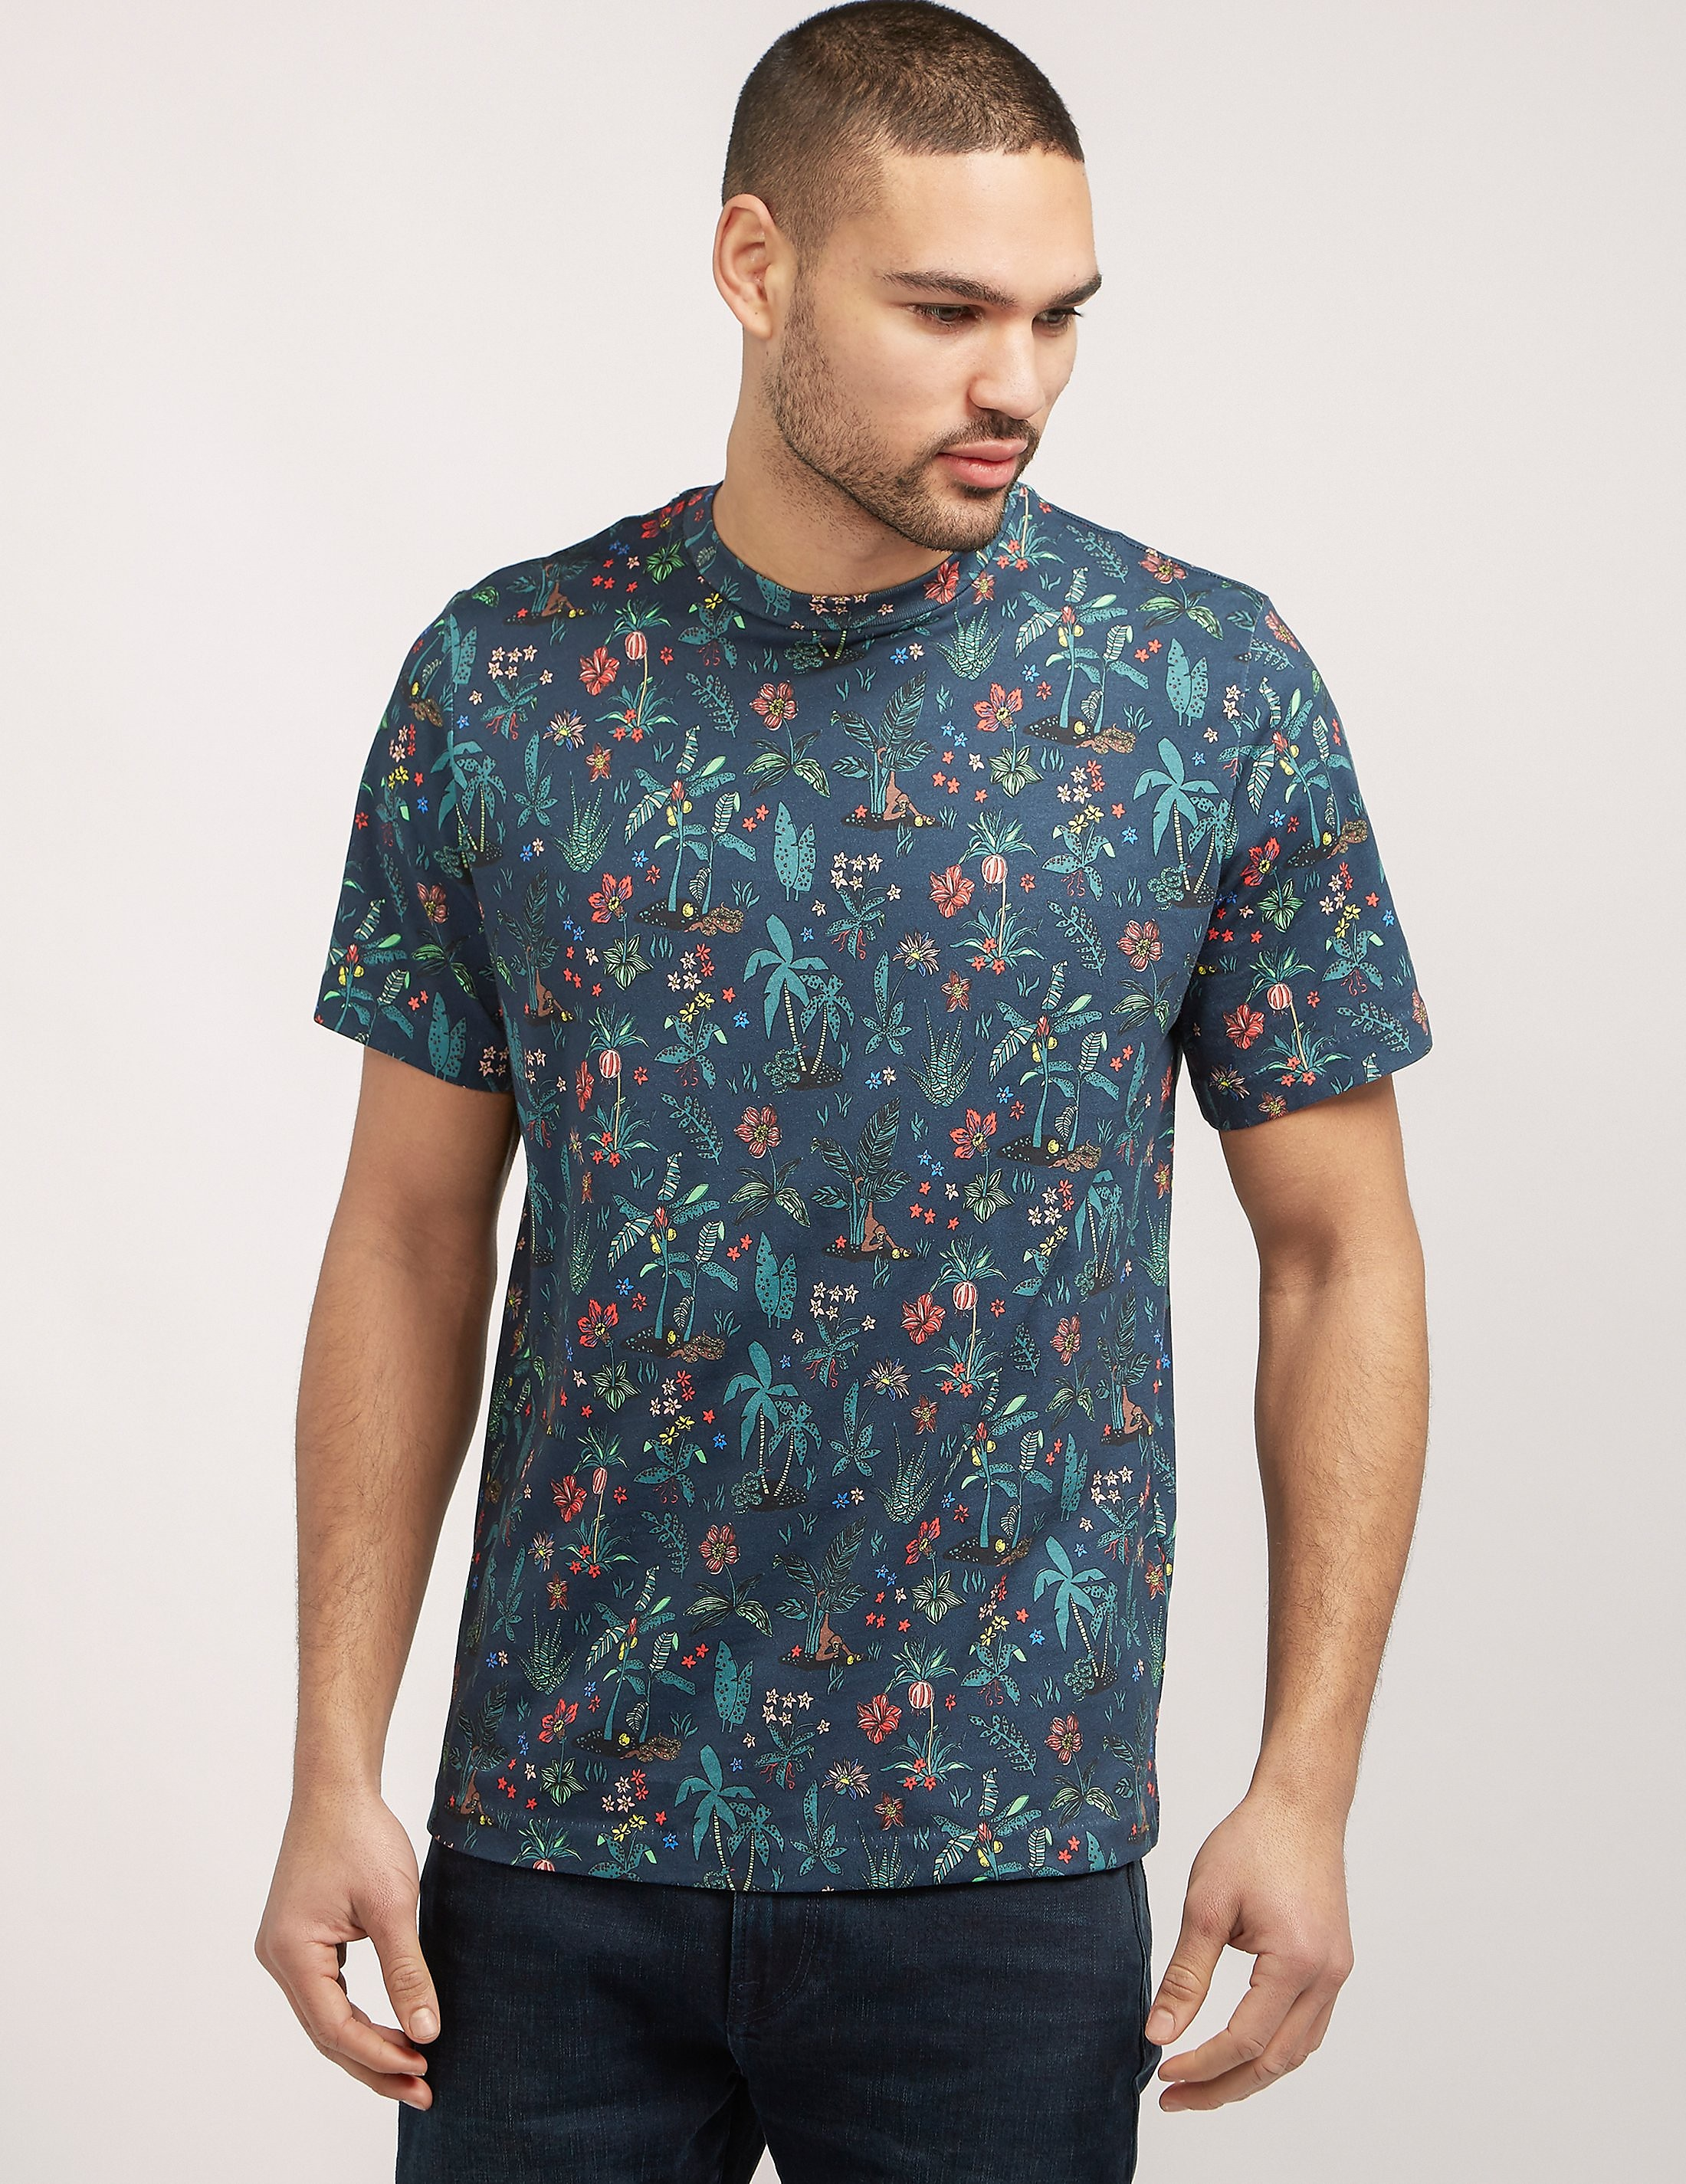 Paul Smith Botanical All Over Print T-Shirt